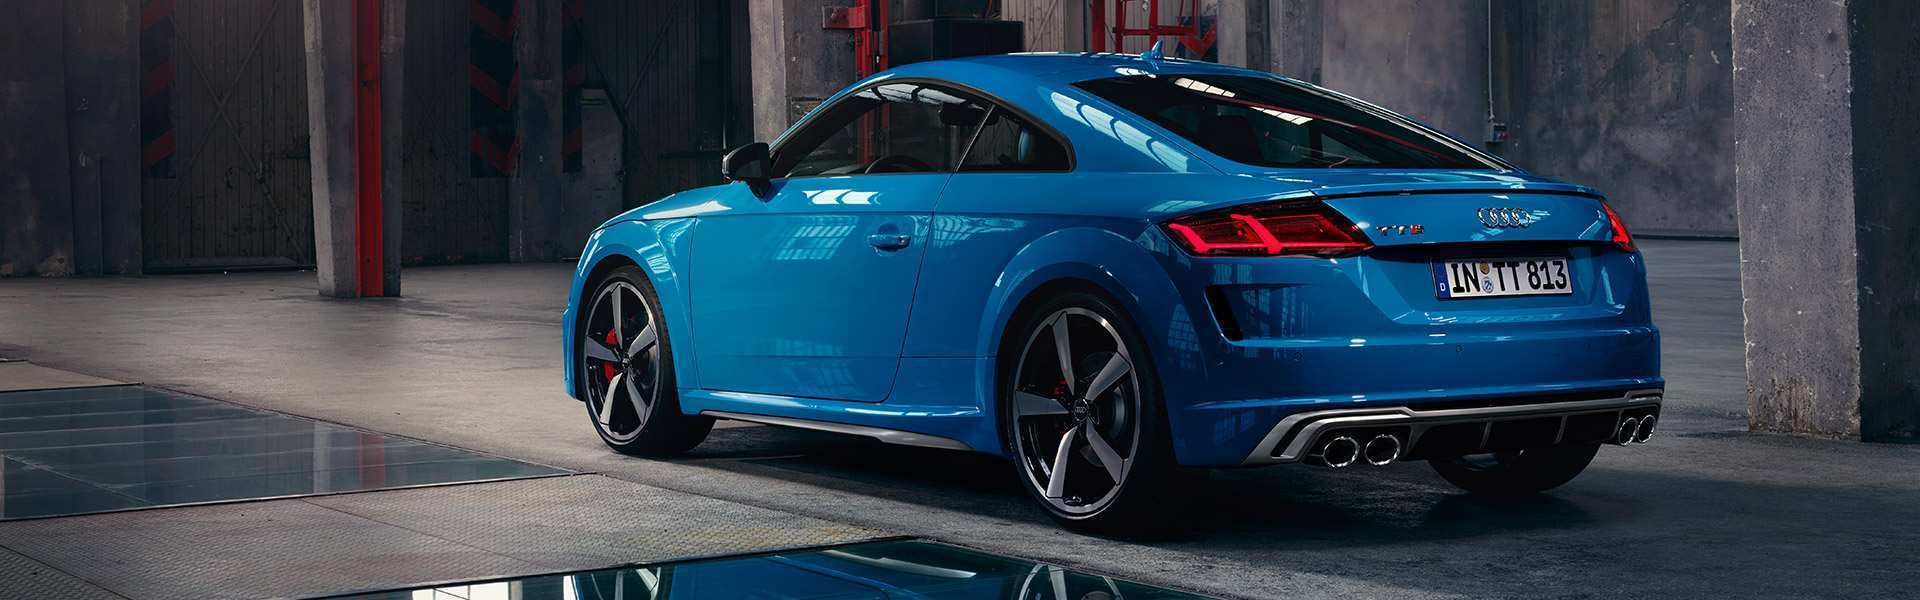 49 The Best 2019 Audi TTS Performance